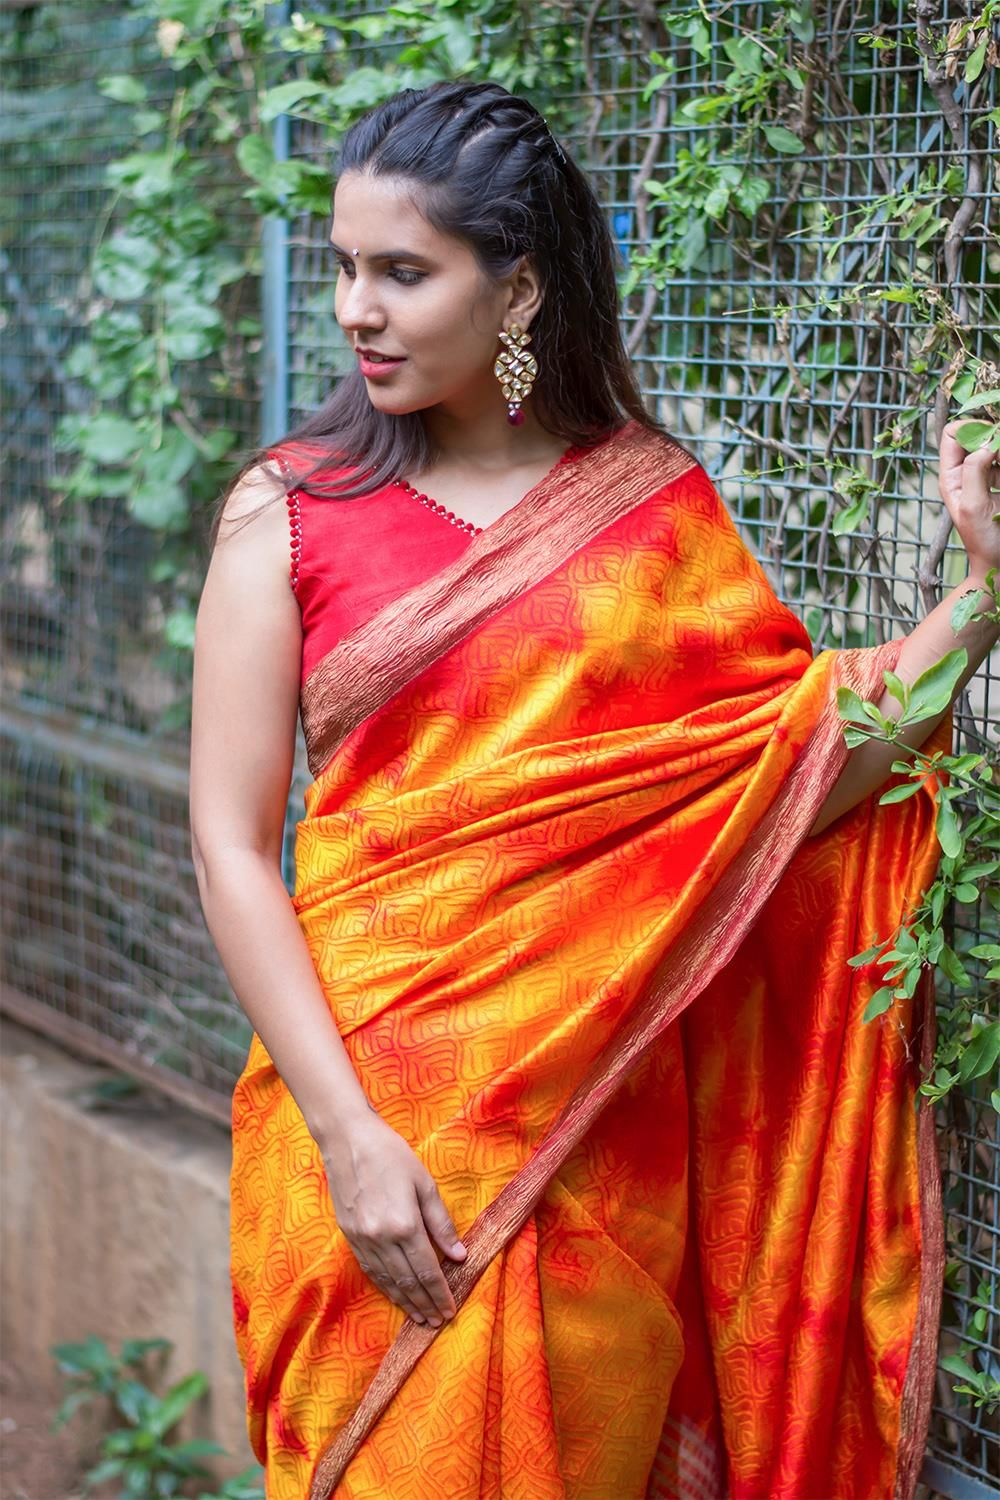 6e0388c459e3c3 Self embossed orange and red dupion silk saree with crushed tissue border # saree #blouse #houseofblouse #indian #bollywood #style #orange #red #yellow  ...